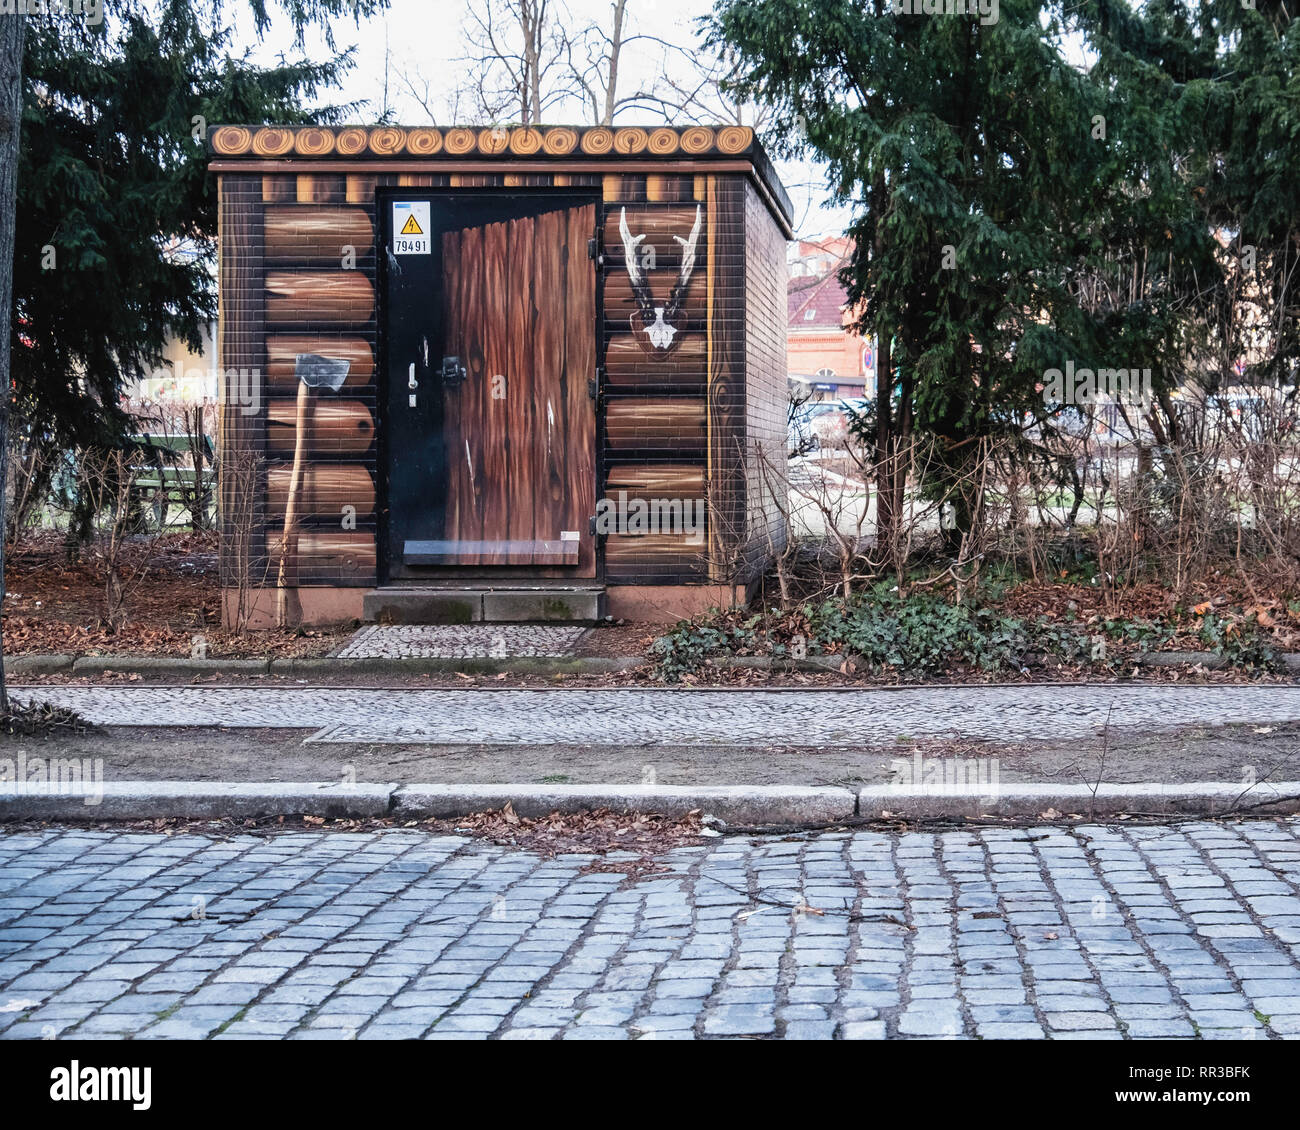 Heidelberger Platz, Wilmersdorf-Berlin.Utility box disguised as forester's shed - Paintwork of logs, ax and deer antlters Stock Photo